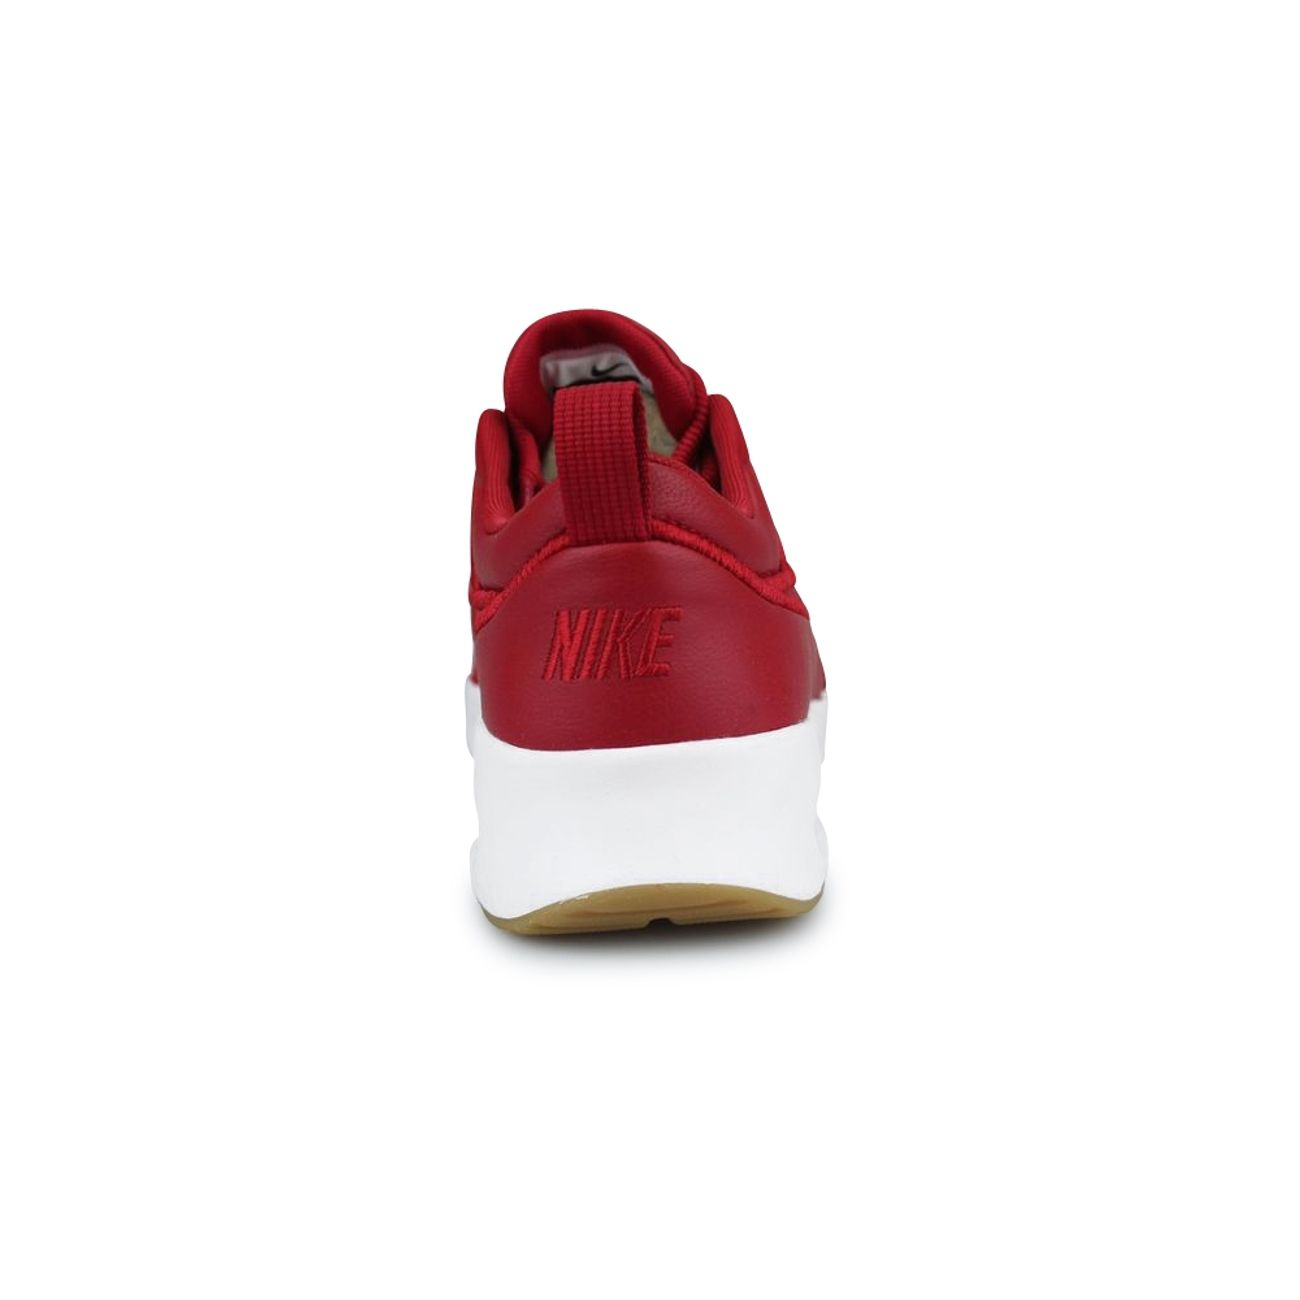 new product 65fa9 c0252 ... Mode- Lifestyle femme NIKE Basket Wmns Nike Air Max Thea Ultra Si Rouge  881119-